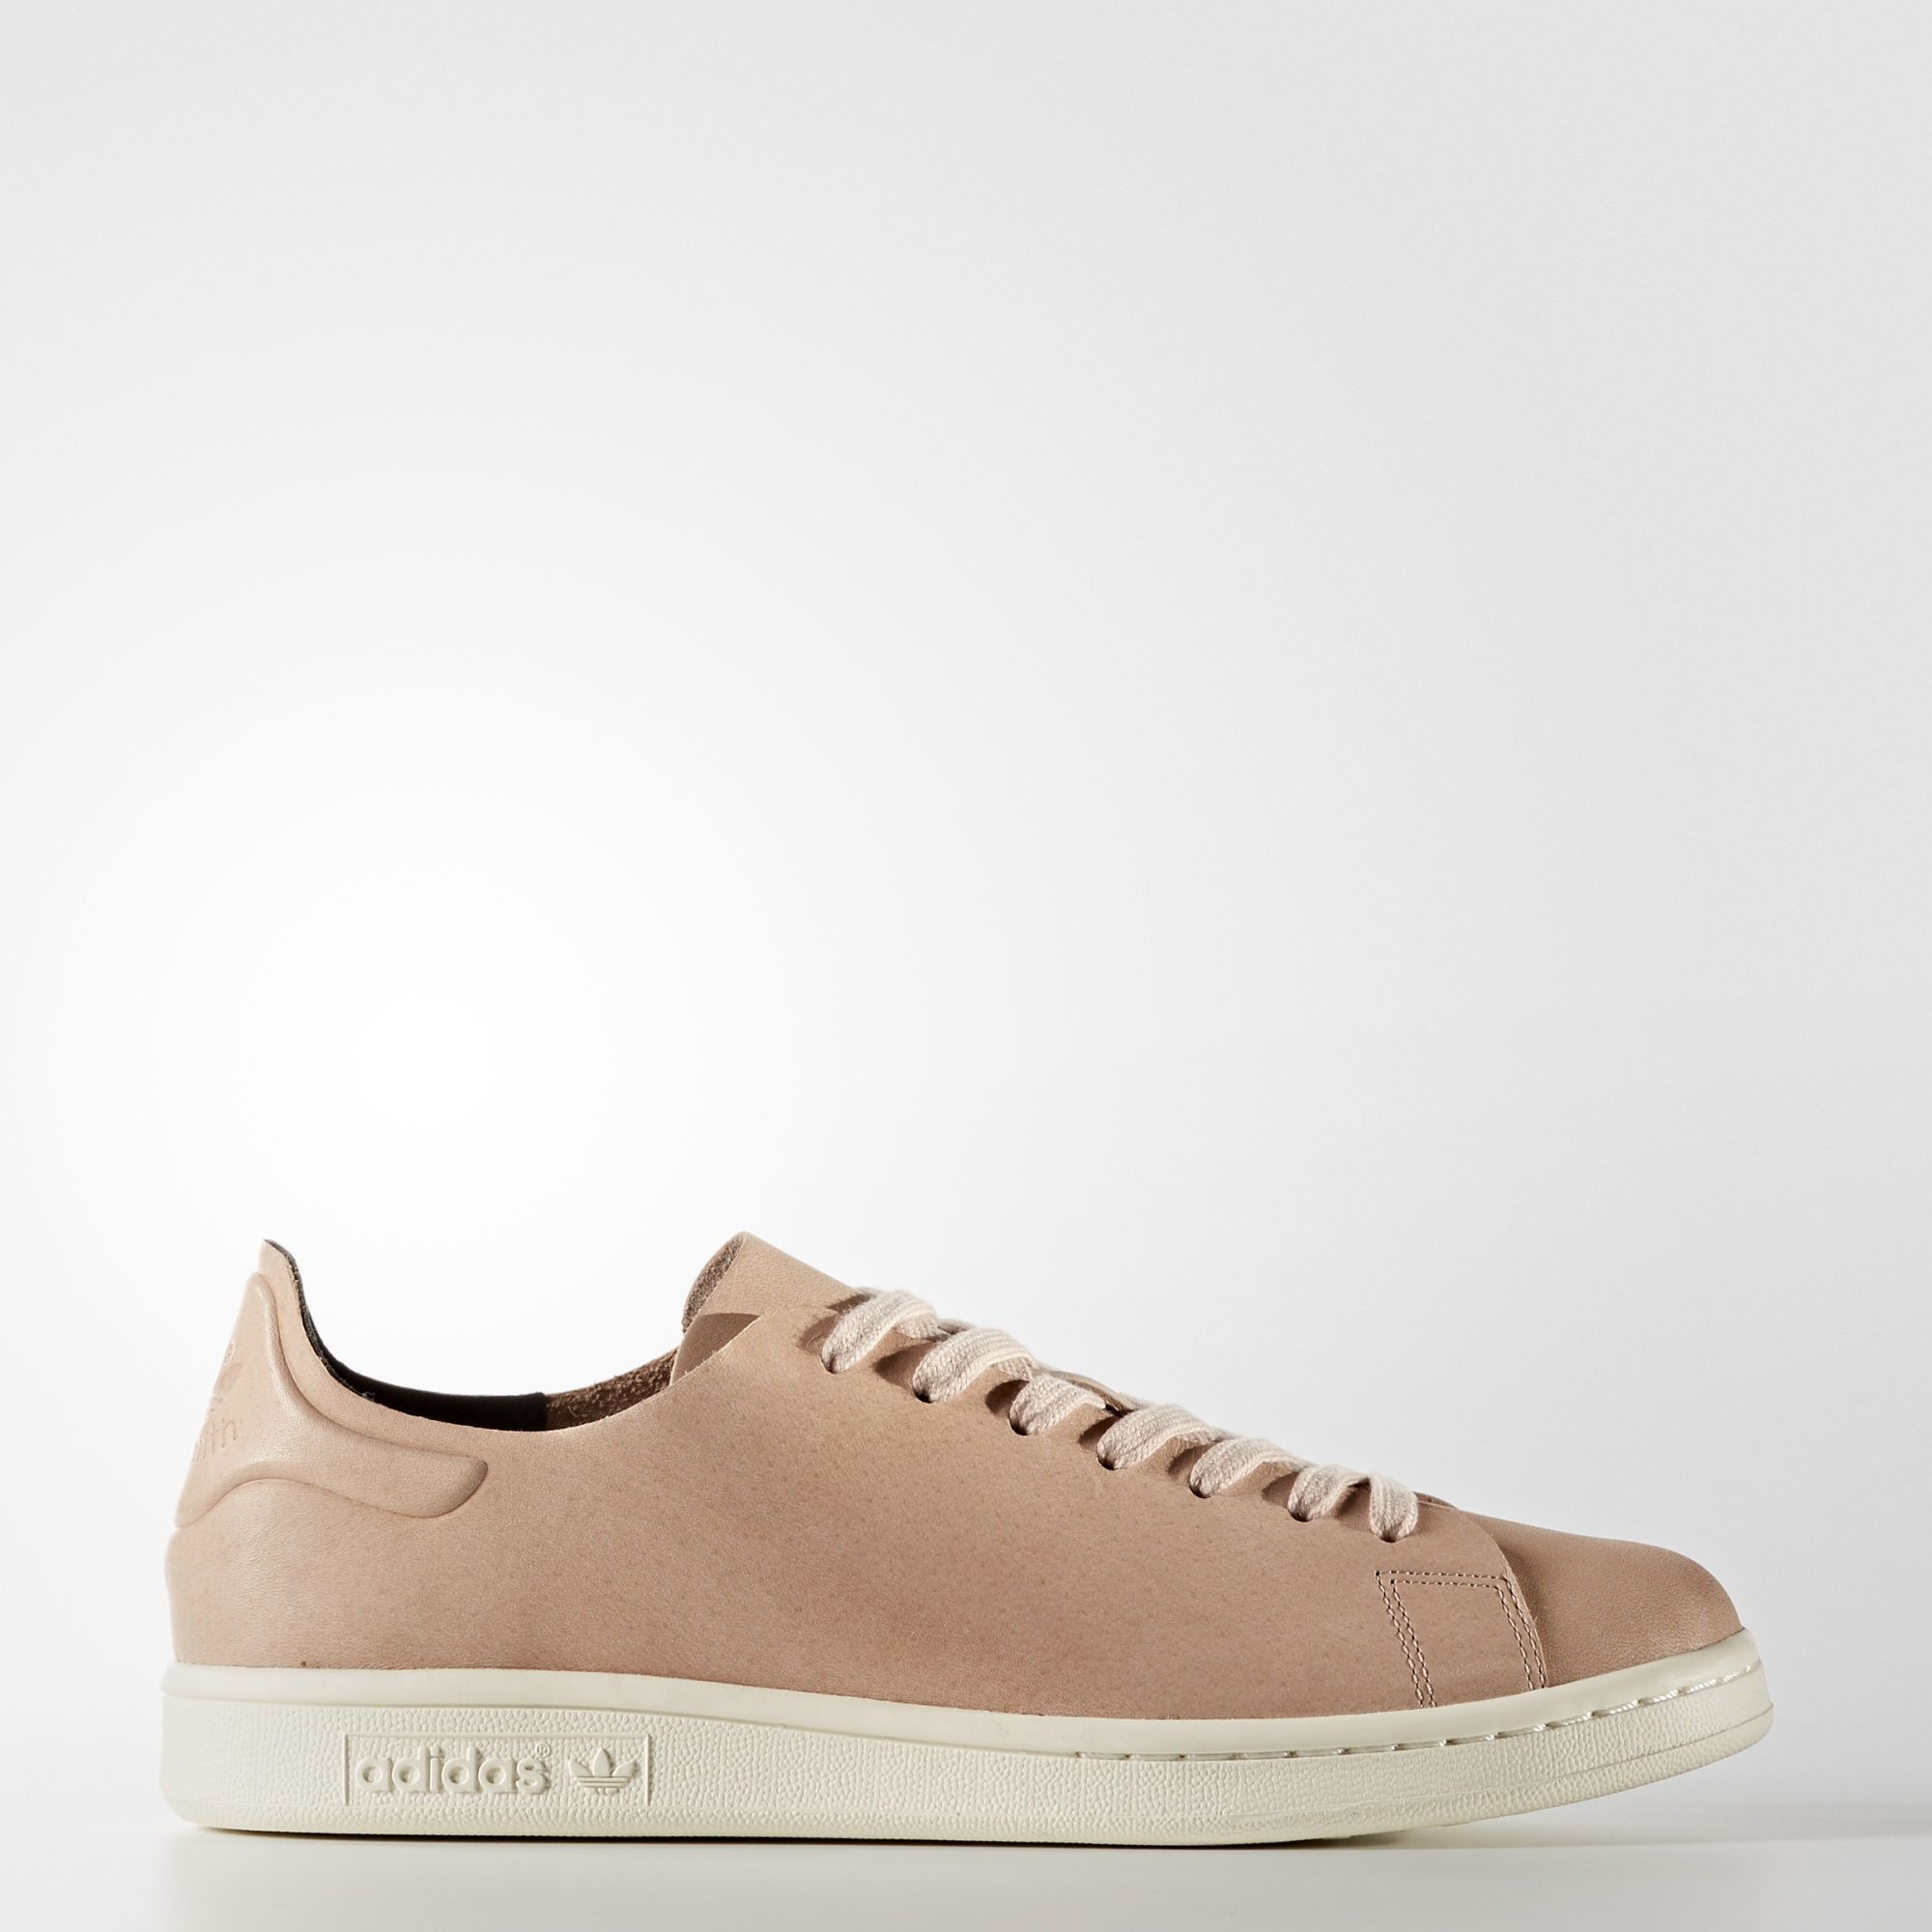 adidas stan smith white copper women's wednesday's child is full of woe